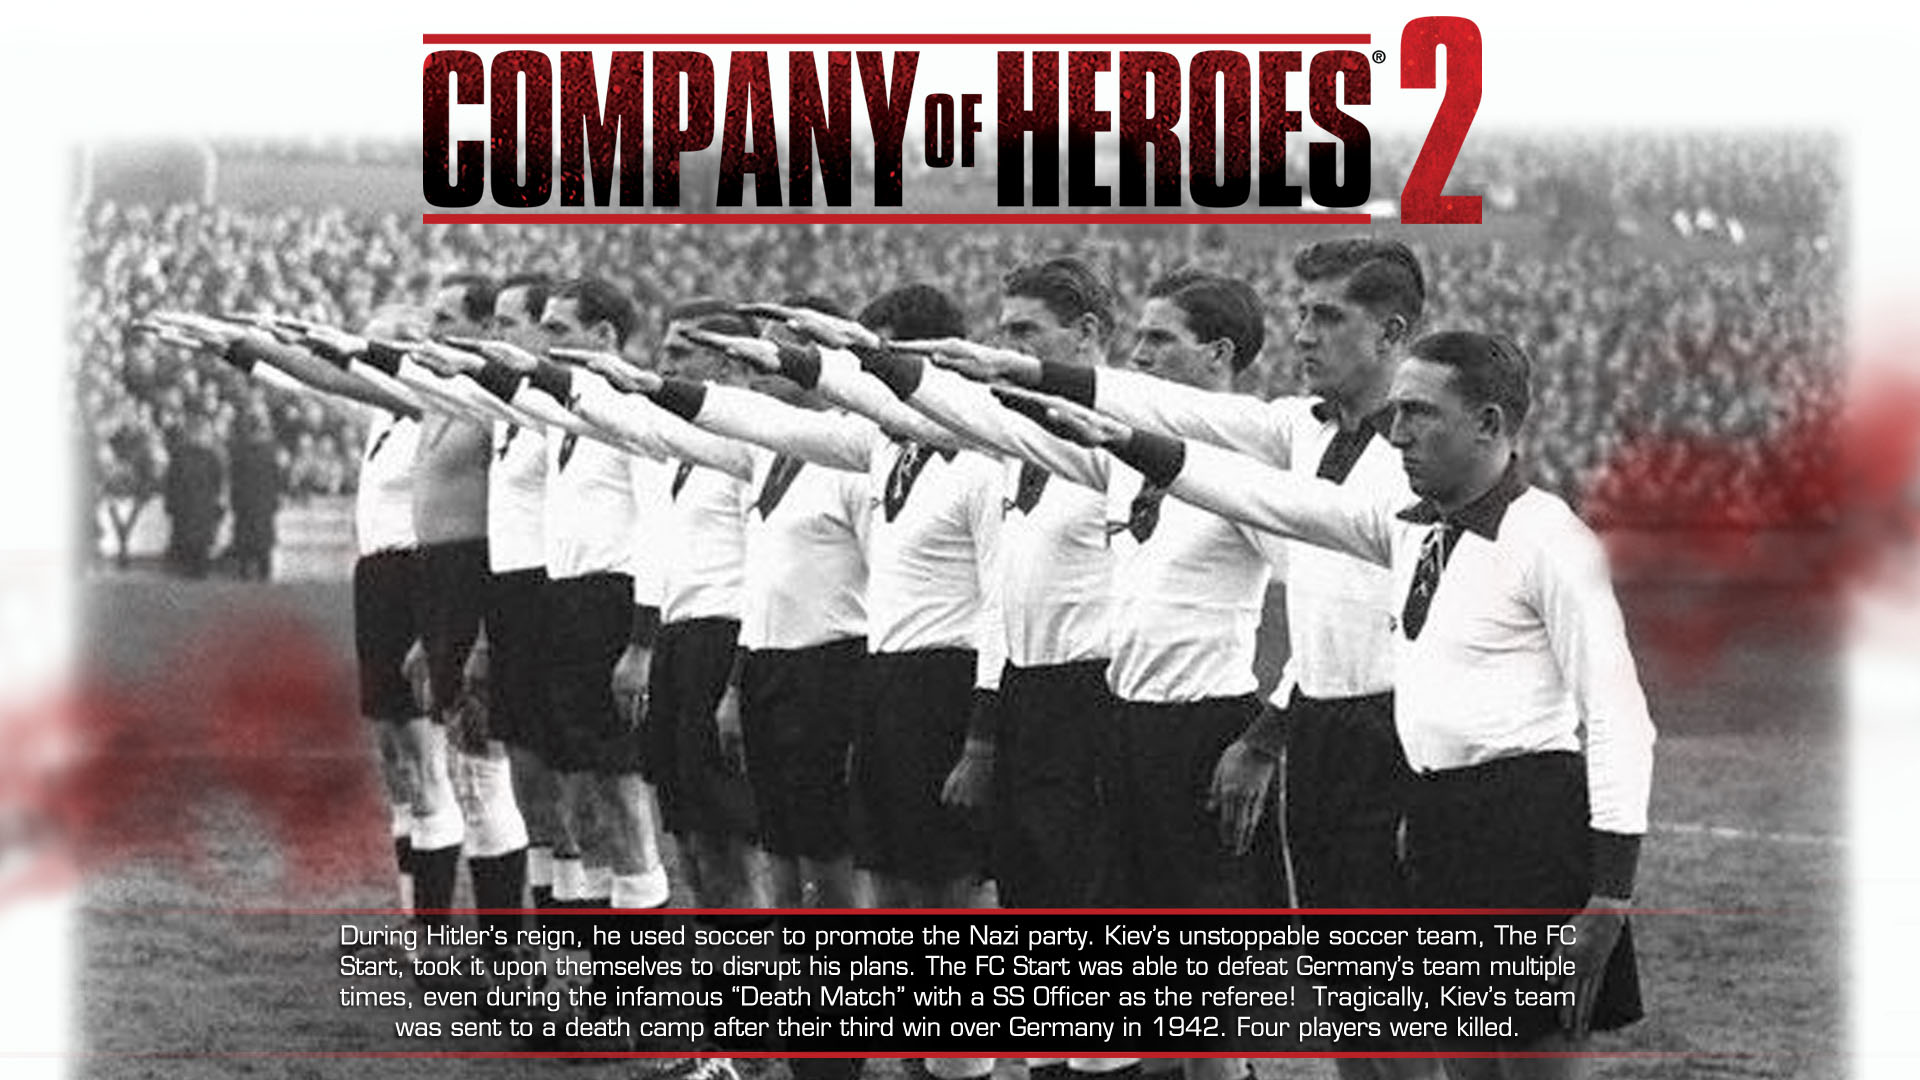 ... wallpapers of Company of Heroes 2. You are downloading Company of